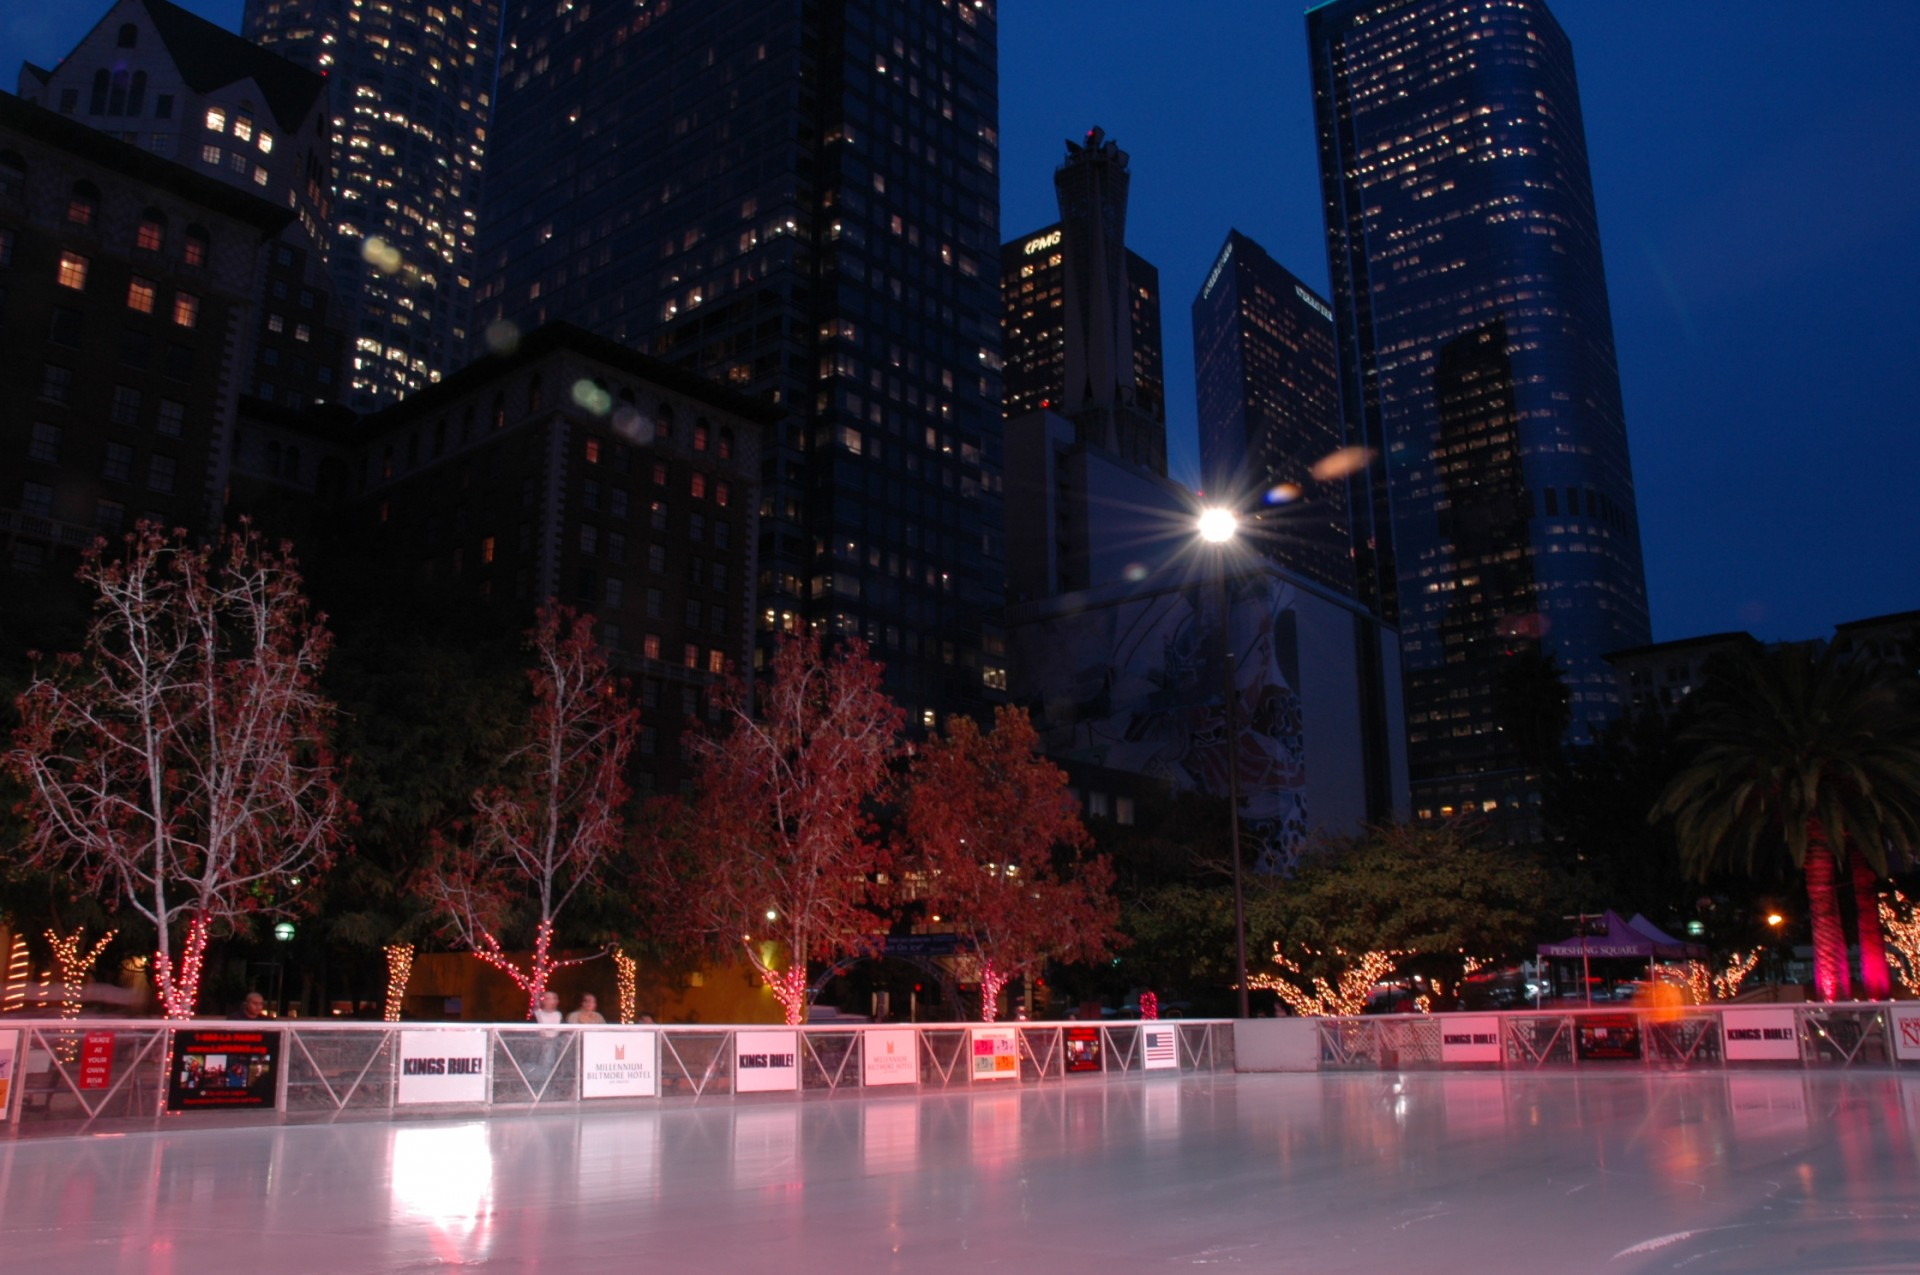 outside ice rink